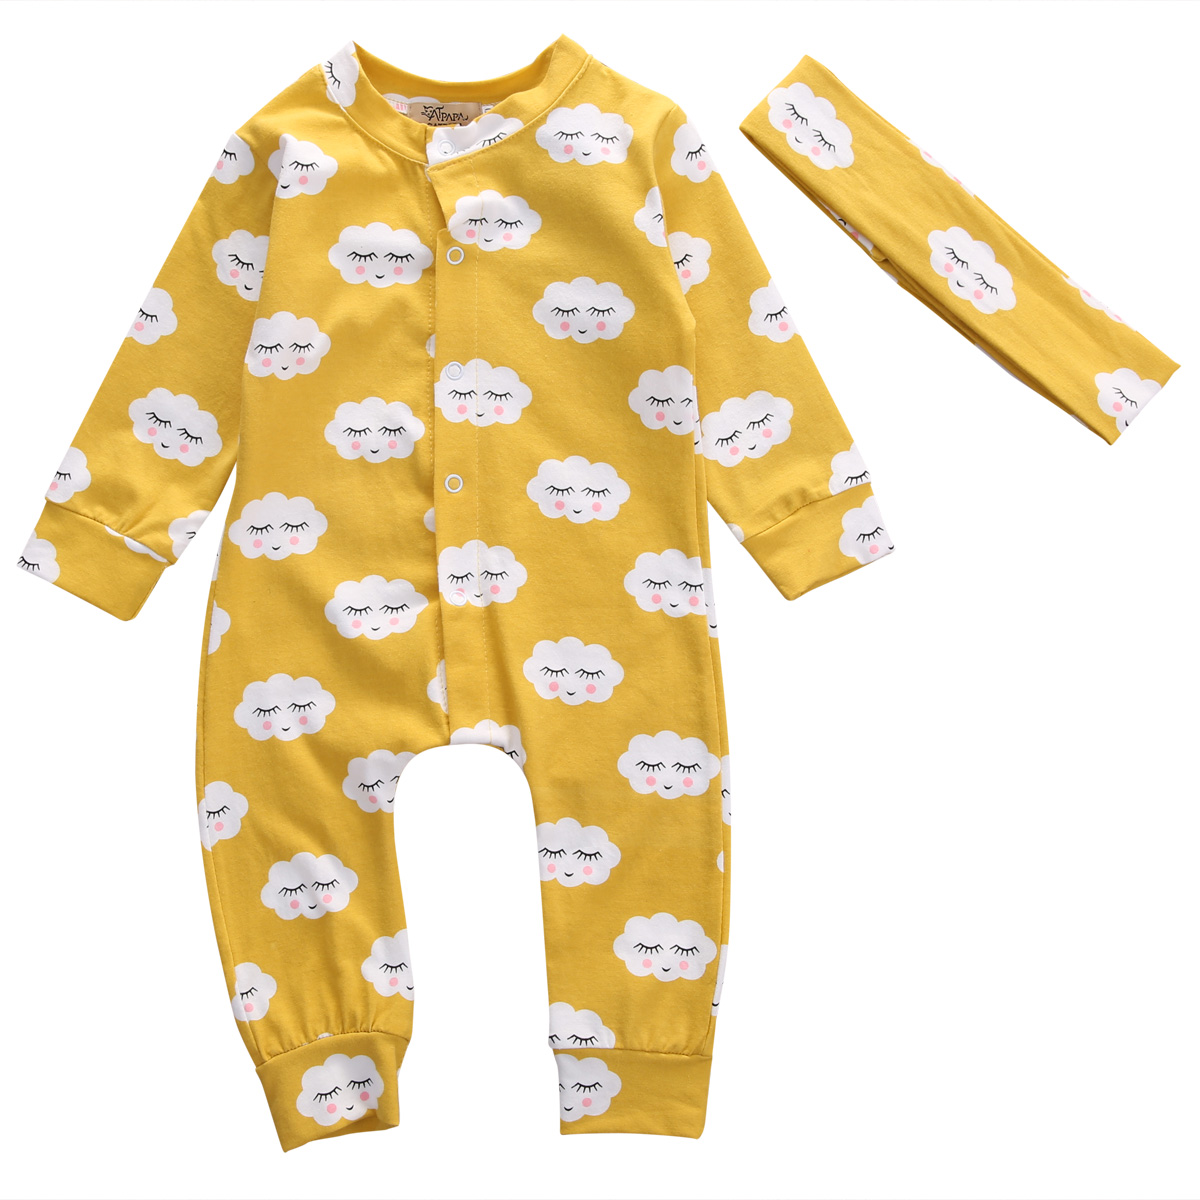 Hot Baby Boy Girl Pants Set Long Sleeve  Newborn Baby Suit Boy cartoon Clothing yellow Sets Gift Suits Kids Clothes Set Infant newborn baby boy girl 5 pcs clothing set cotton cartoon monk tops pants bib hats infant clothes 0 3 months hight quality